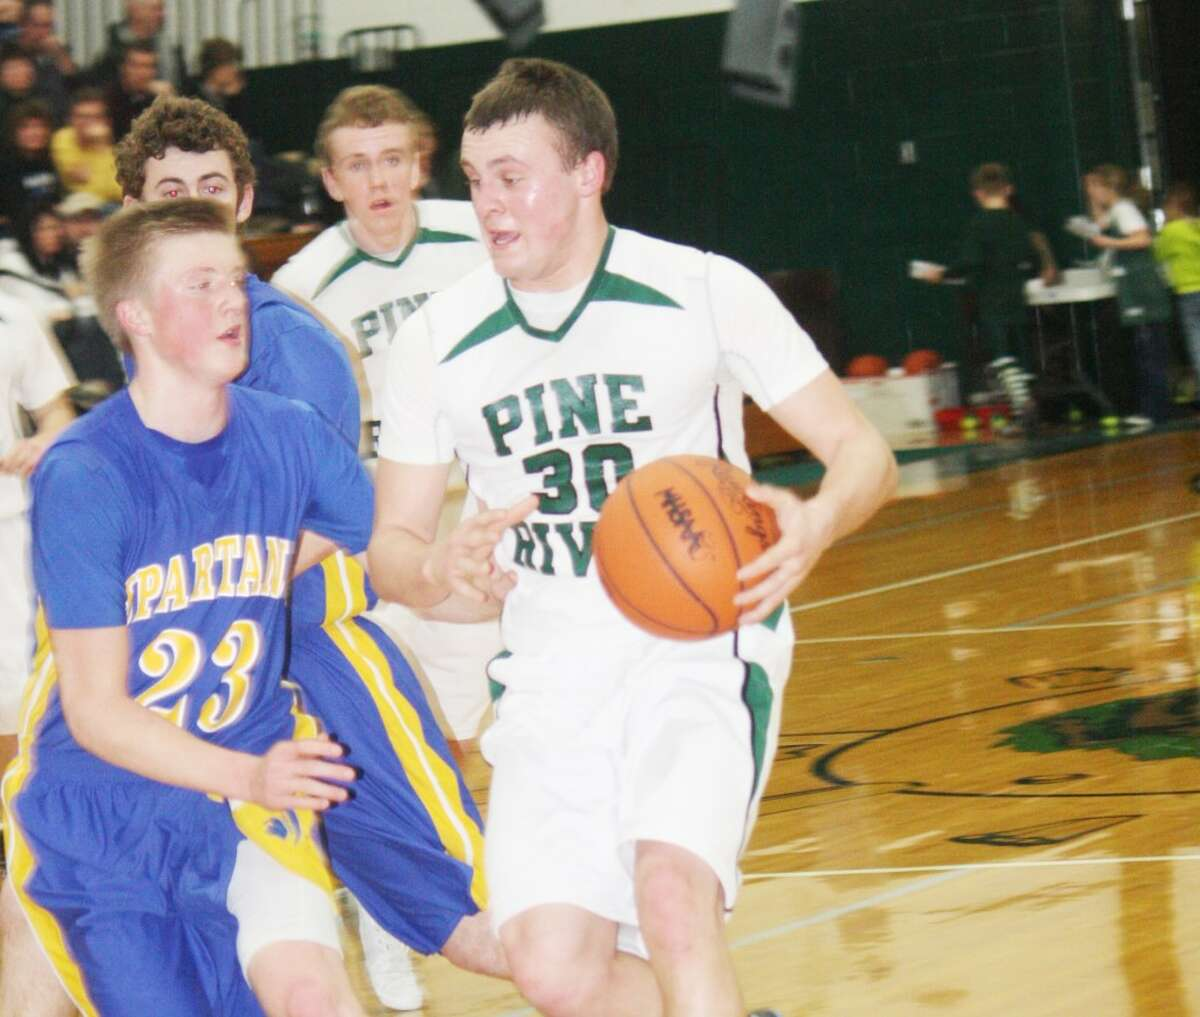 IN THE LANE: Pine River's Devin Ruppert (right) drives to the basket against Mason County Central on Monday. (Herald Review photo/John Raffel)